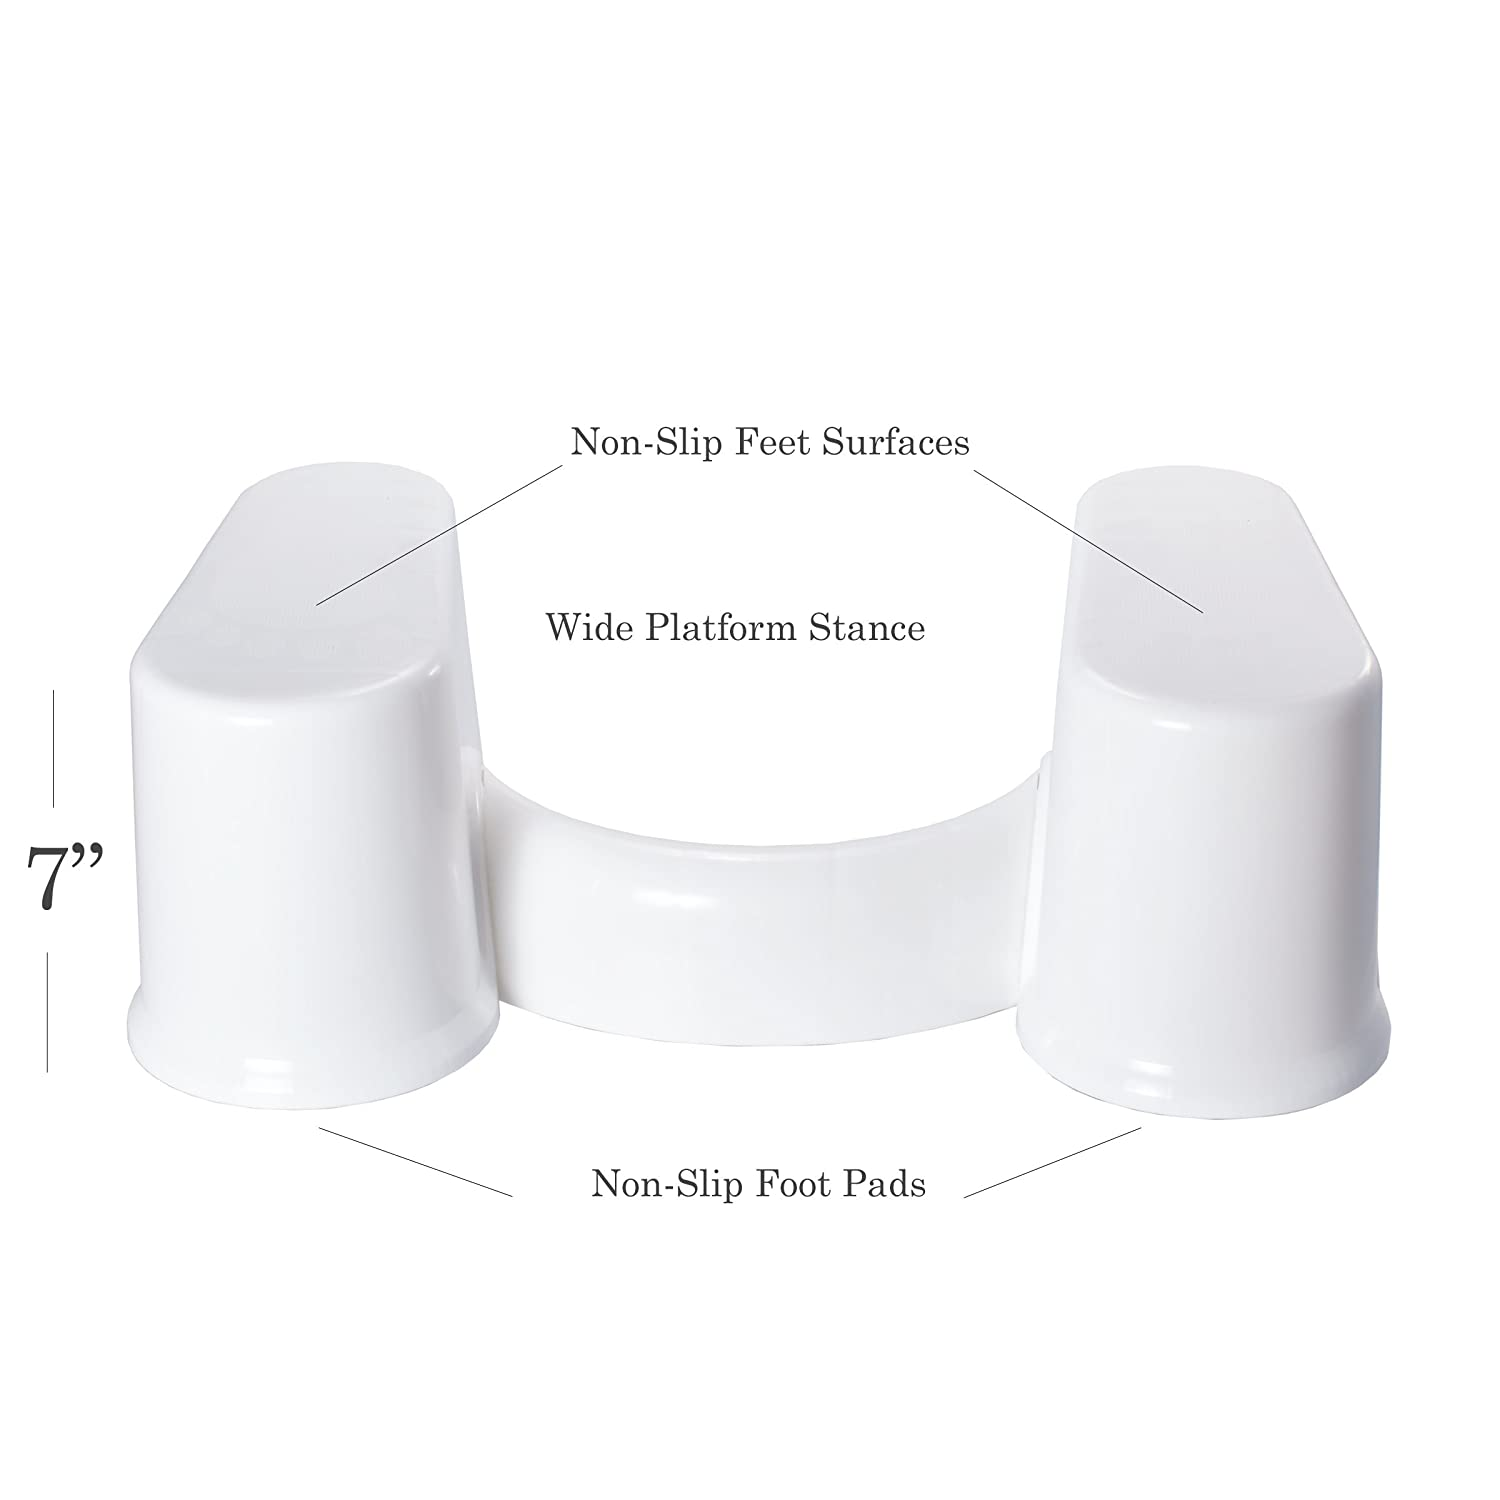 2x Packs Set Most Ergonomic Bathroom Space Saver 7 Inch Toilet Stool Natural Aid For Squatty Posture Better Bowel Movements For All Ages